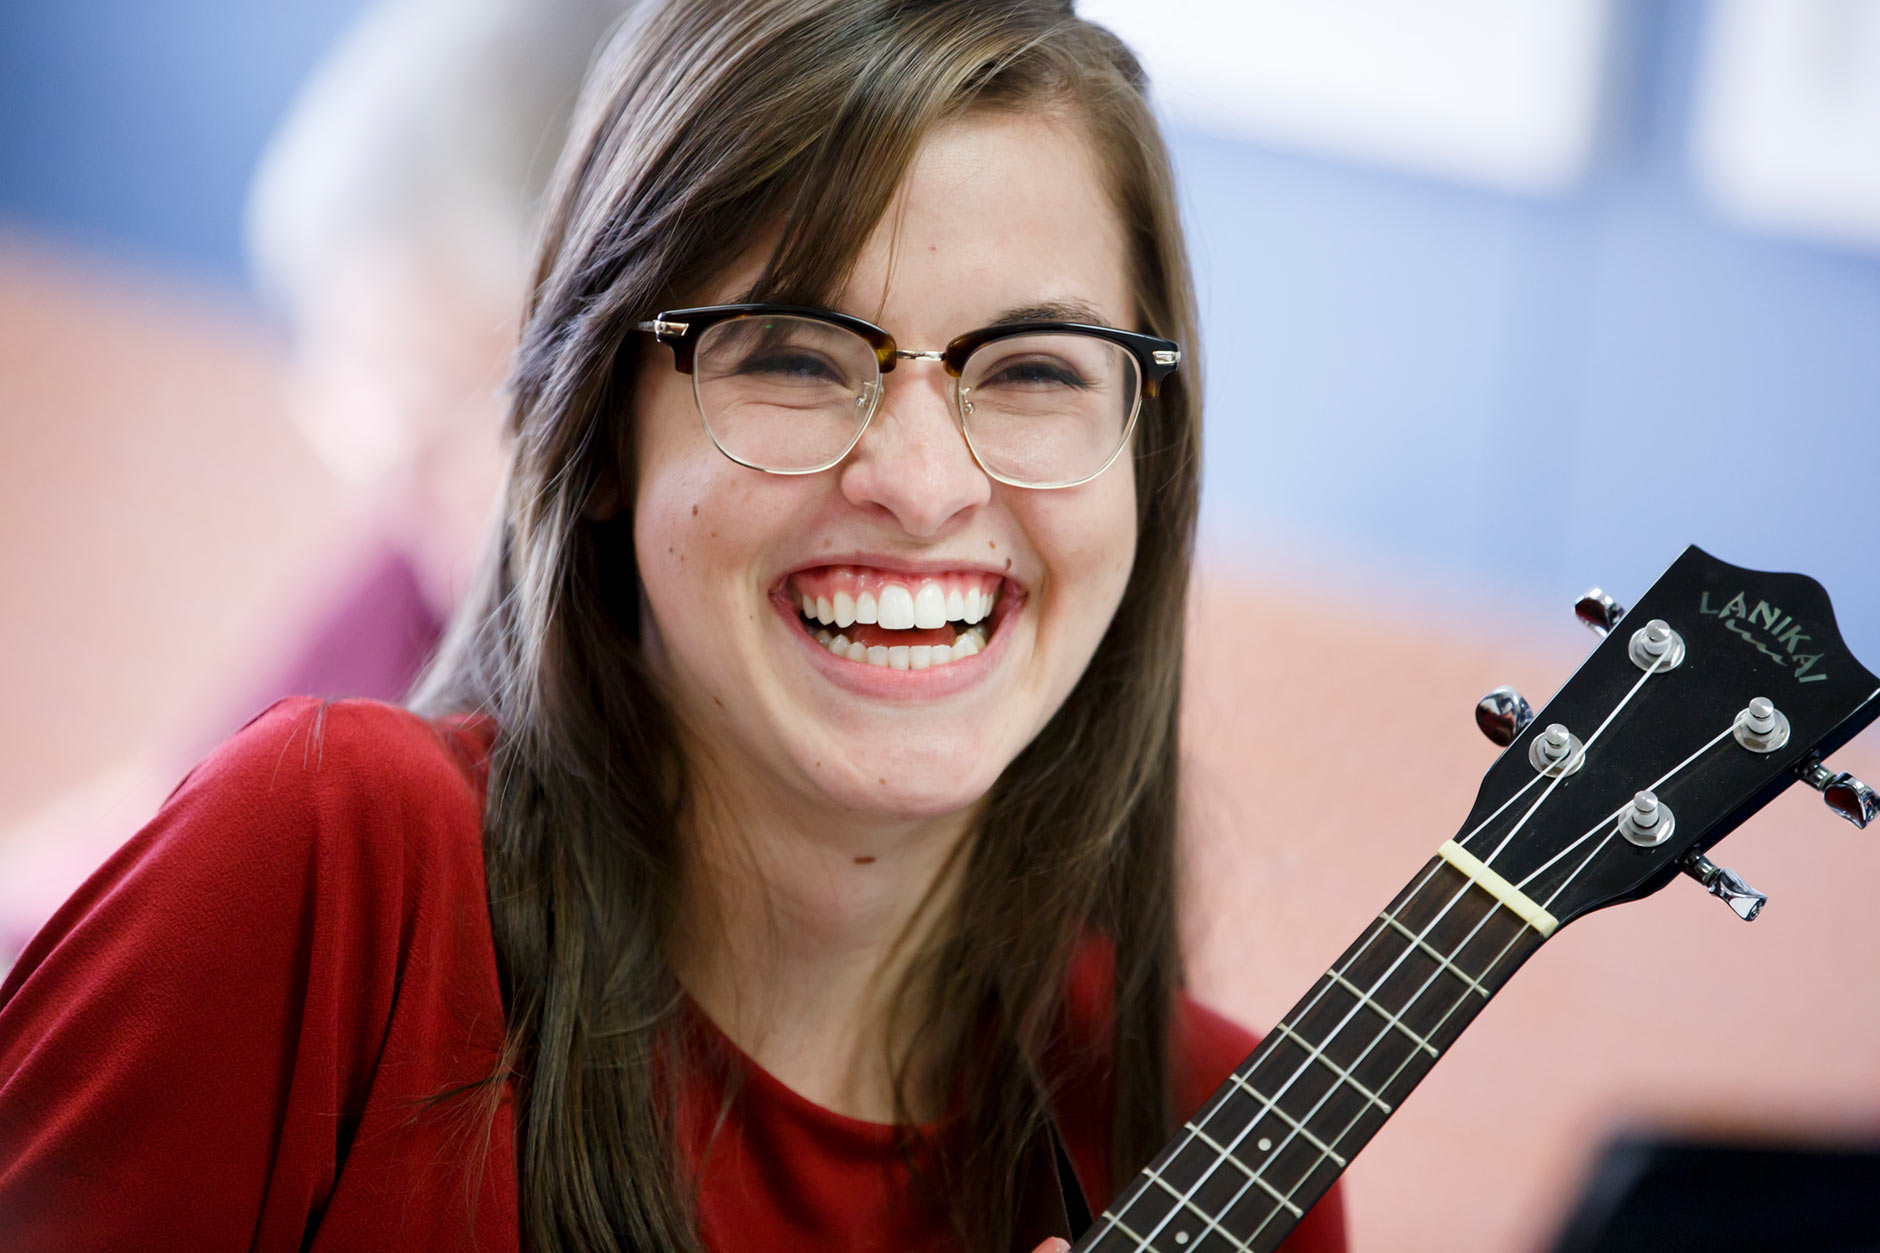 Emily Edwards, a graduating senior at IUPUC, laughs as she participates in a ukulele club meeting on campus in Columbus on Thursday, April 5, 2018. (James Brosher/IU Communications)